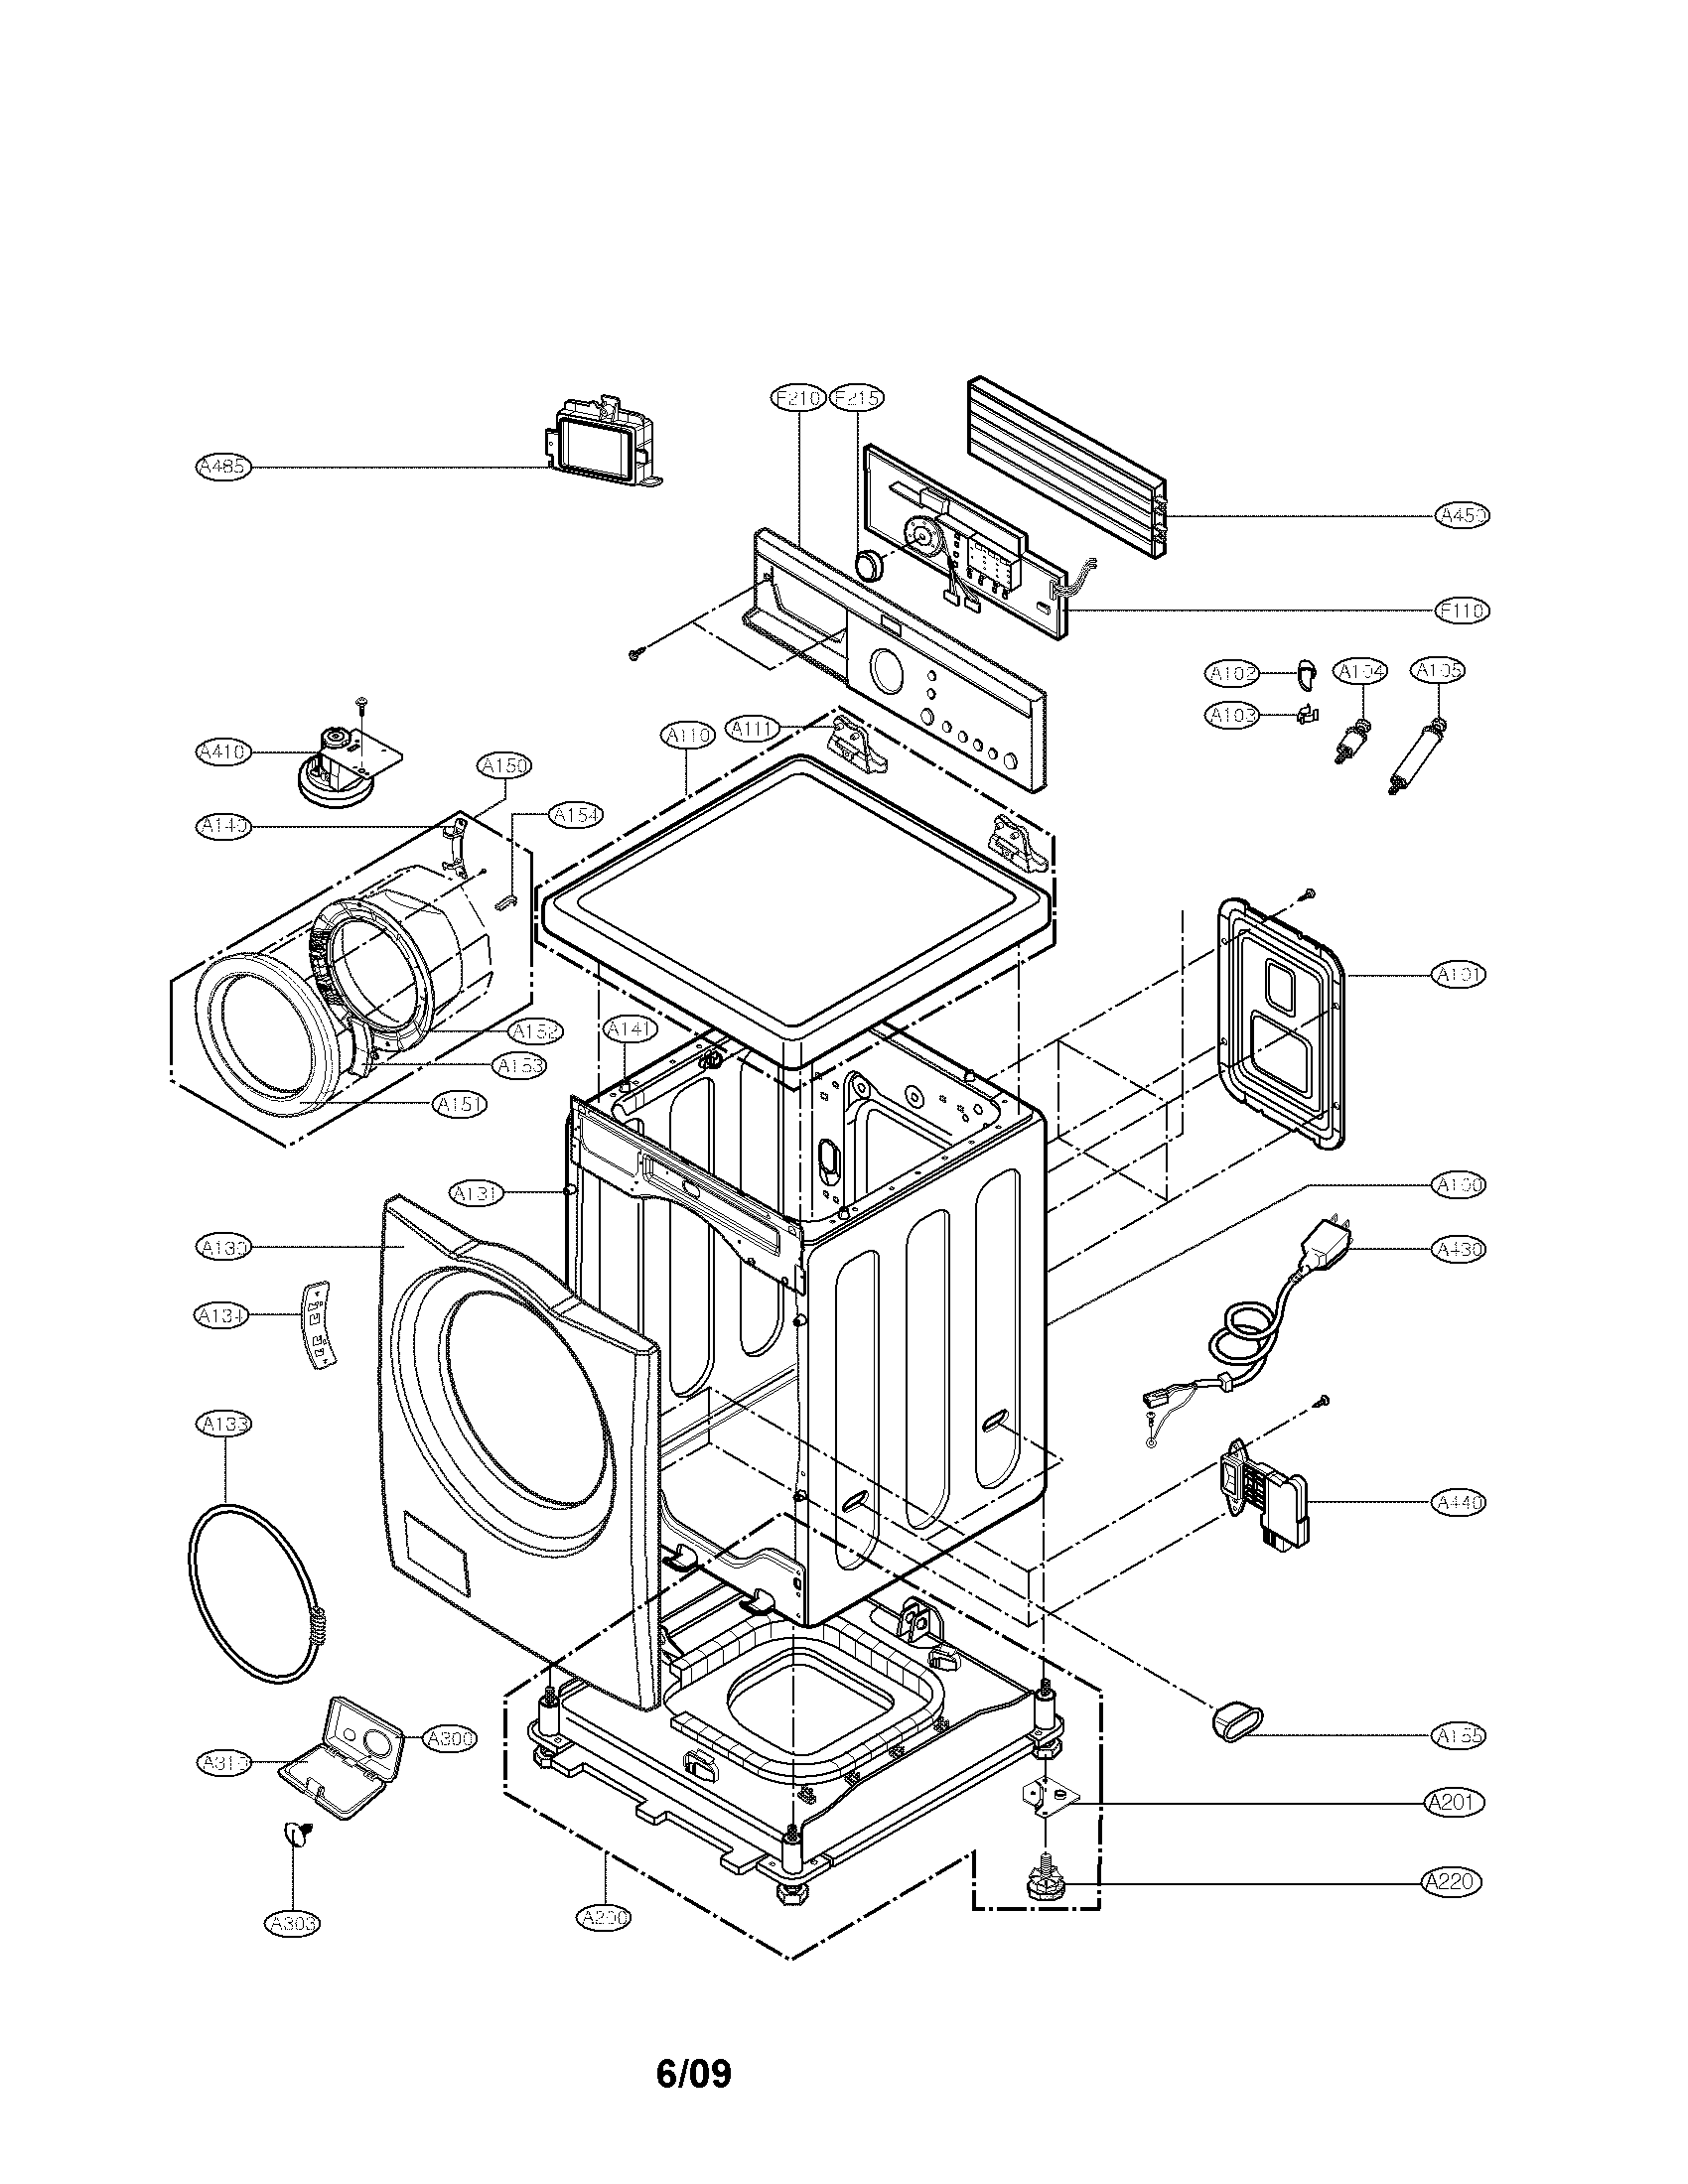 Repair Lg Washer Wm2487hrm Diagram